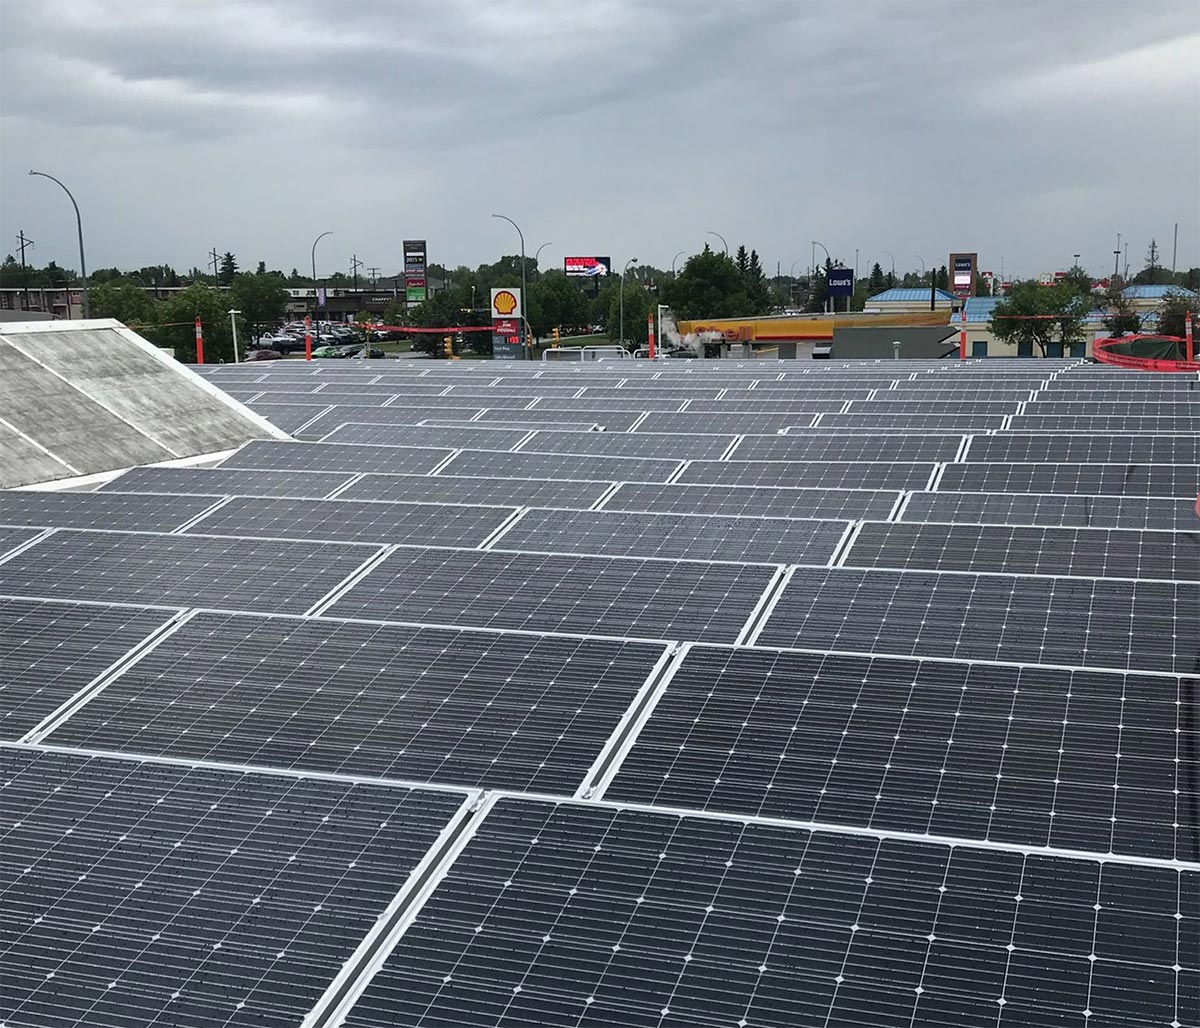 Wascana Solar Co-operative's Commercial Installation at Conexus Credit Union, Regina, Saskatchewan.